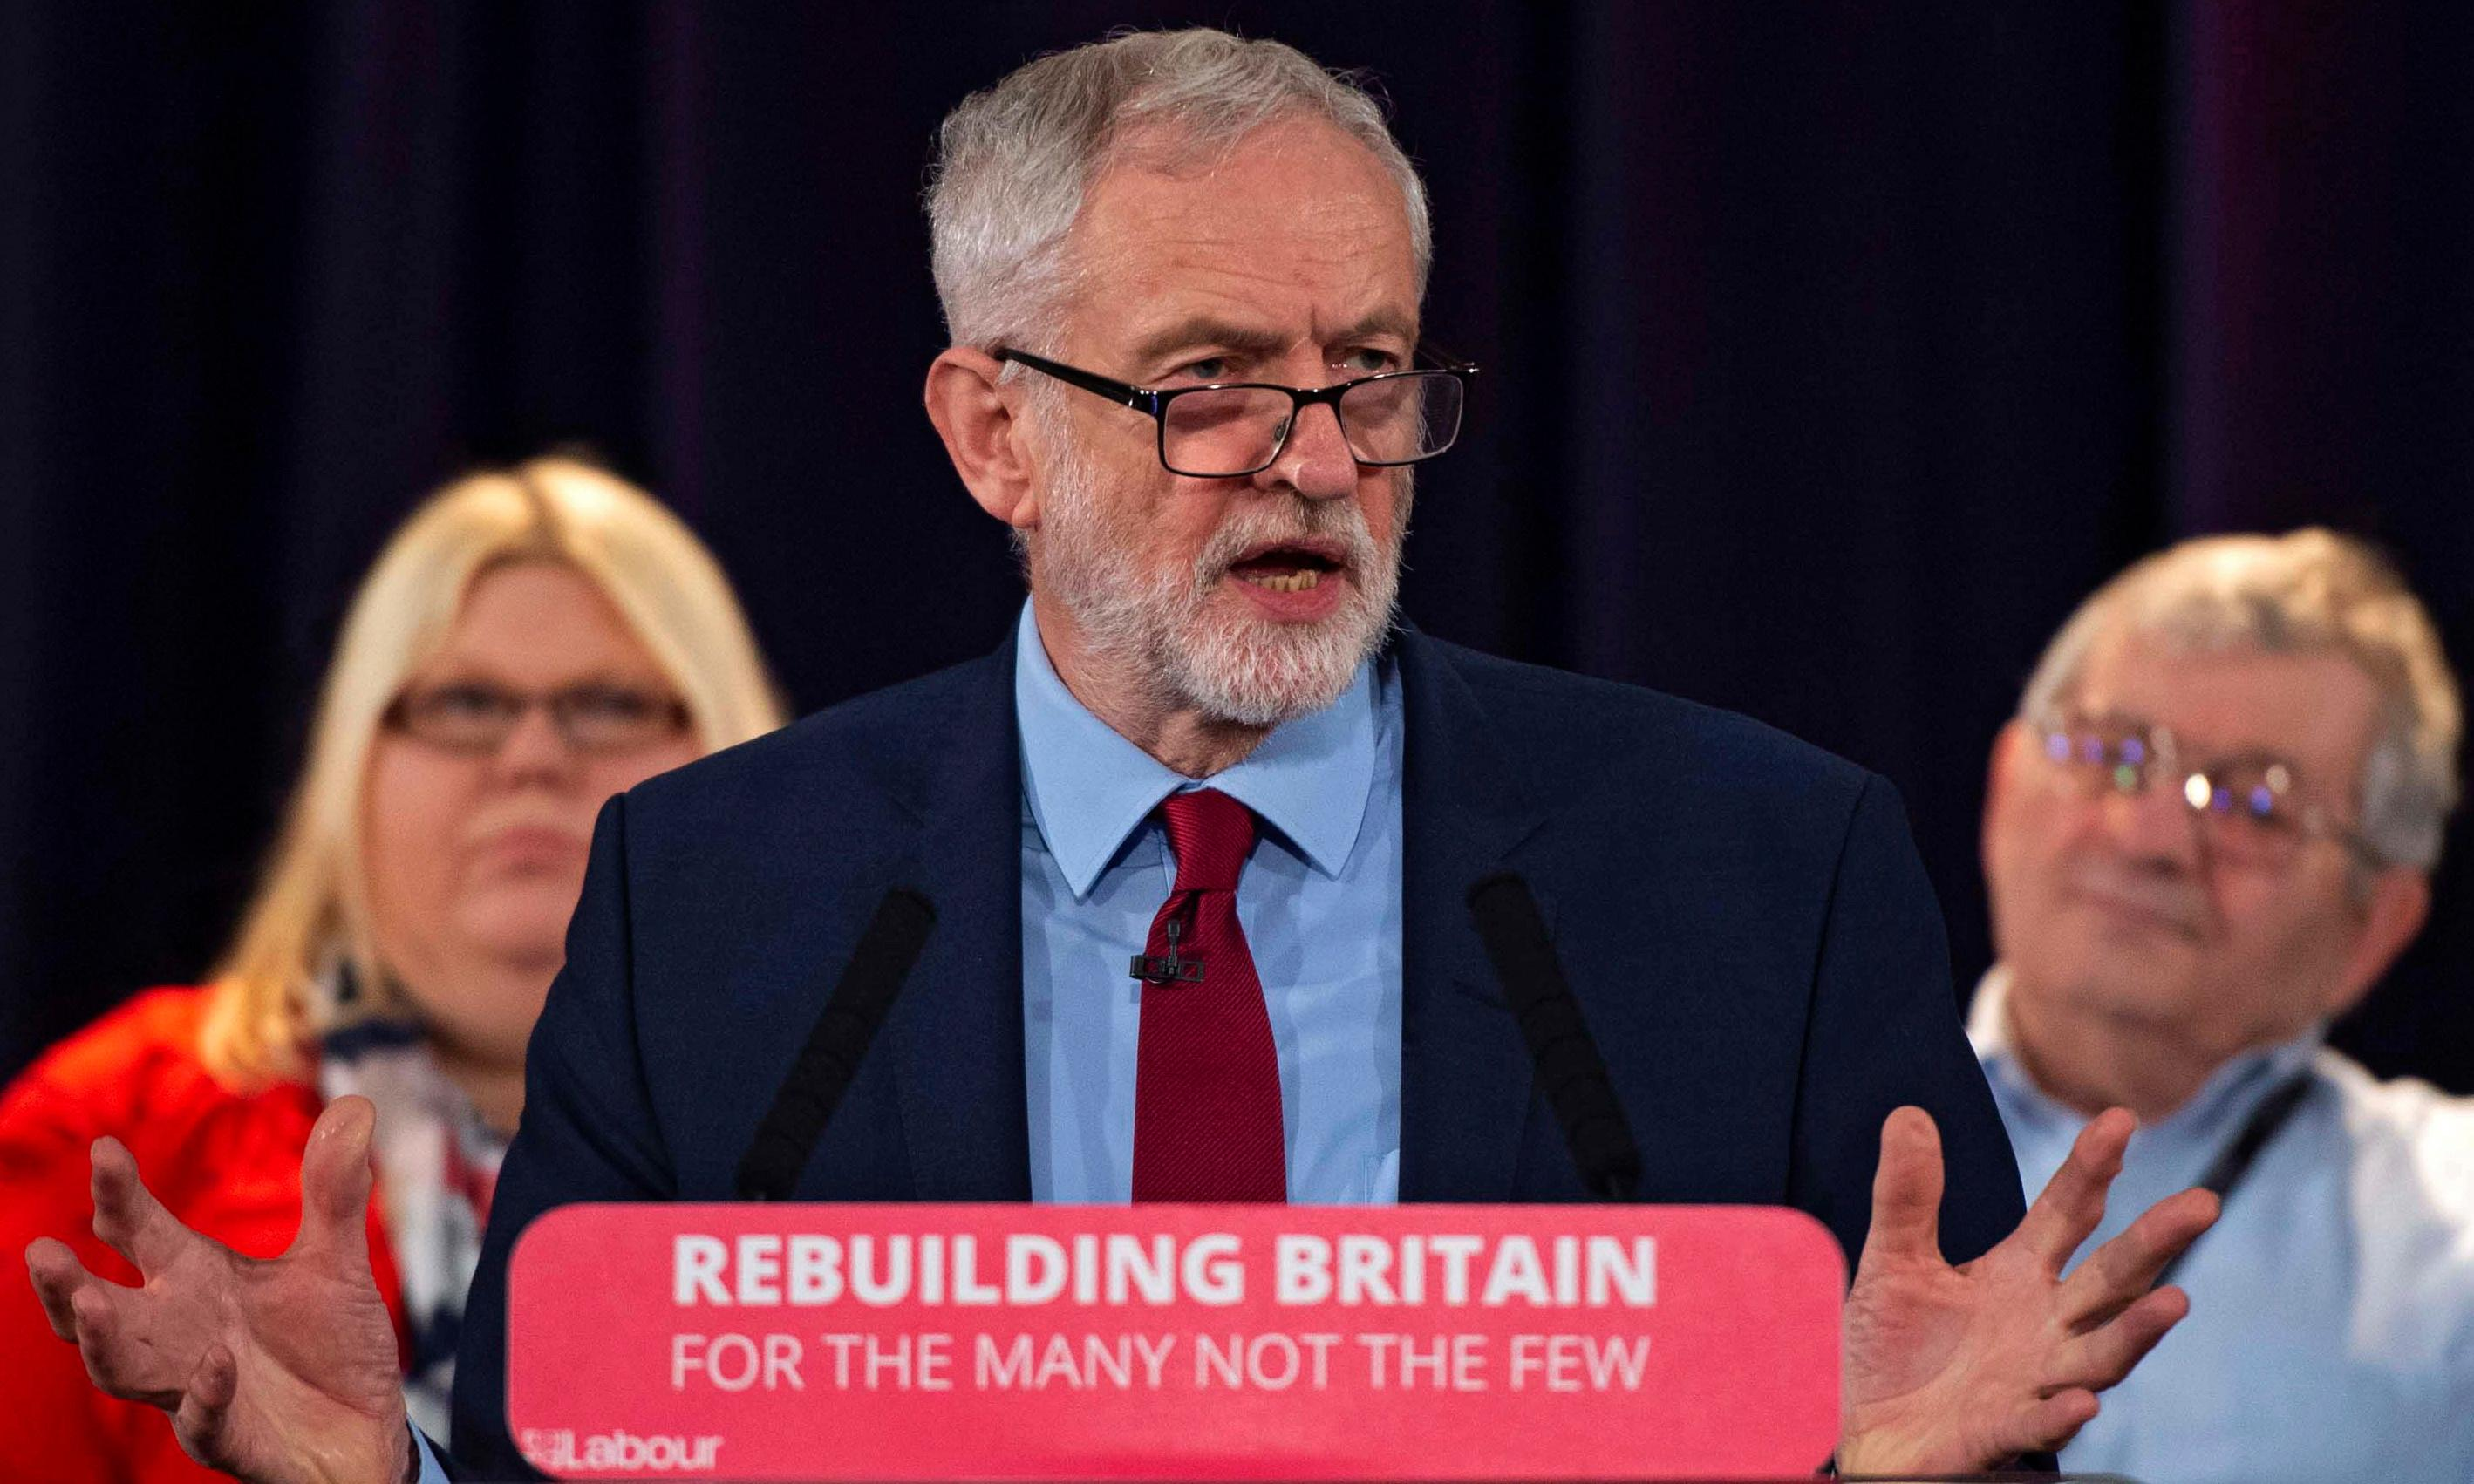 Voters less likely to back Labour with 'stop Brexit' policy, leaked poll suggests